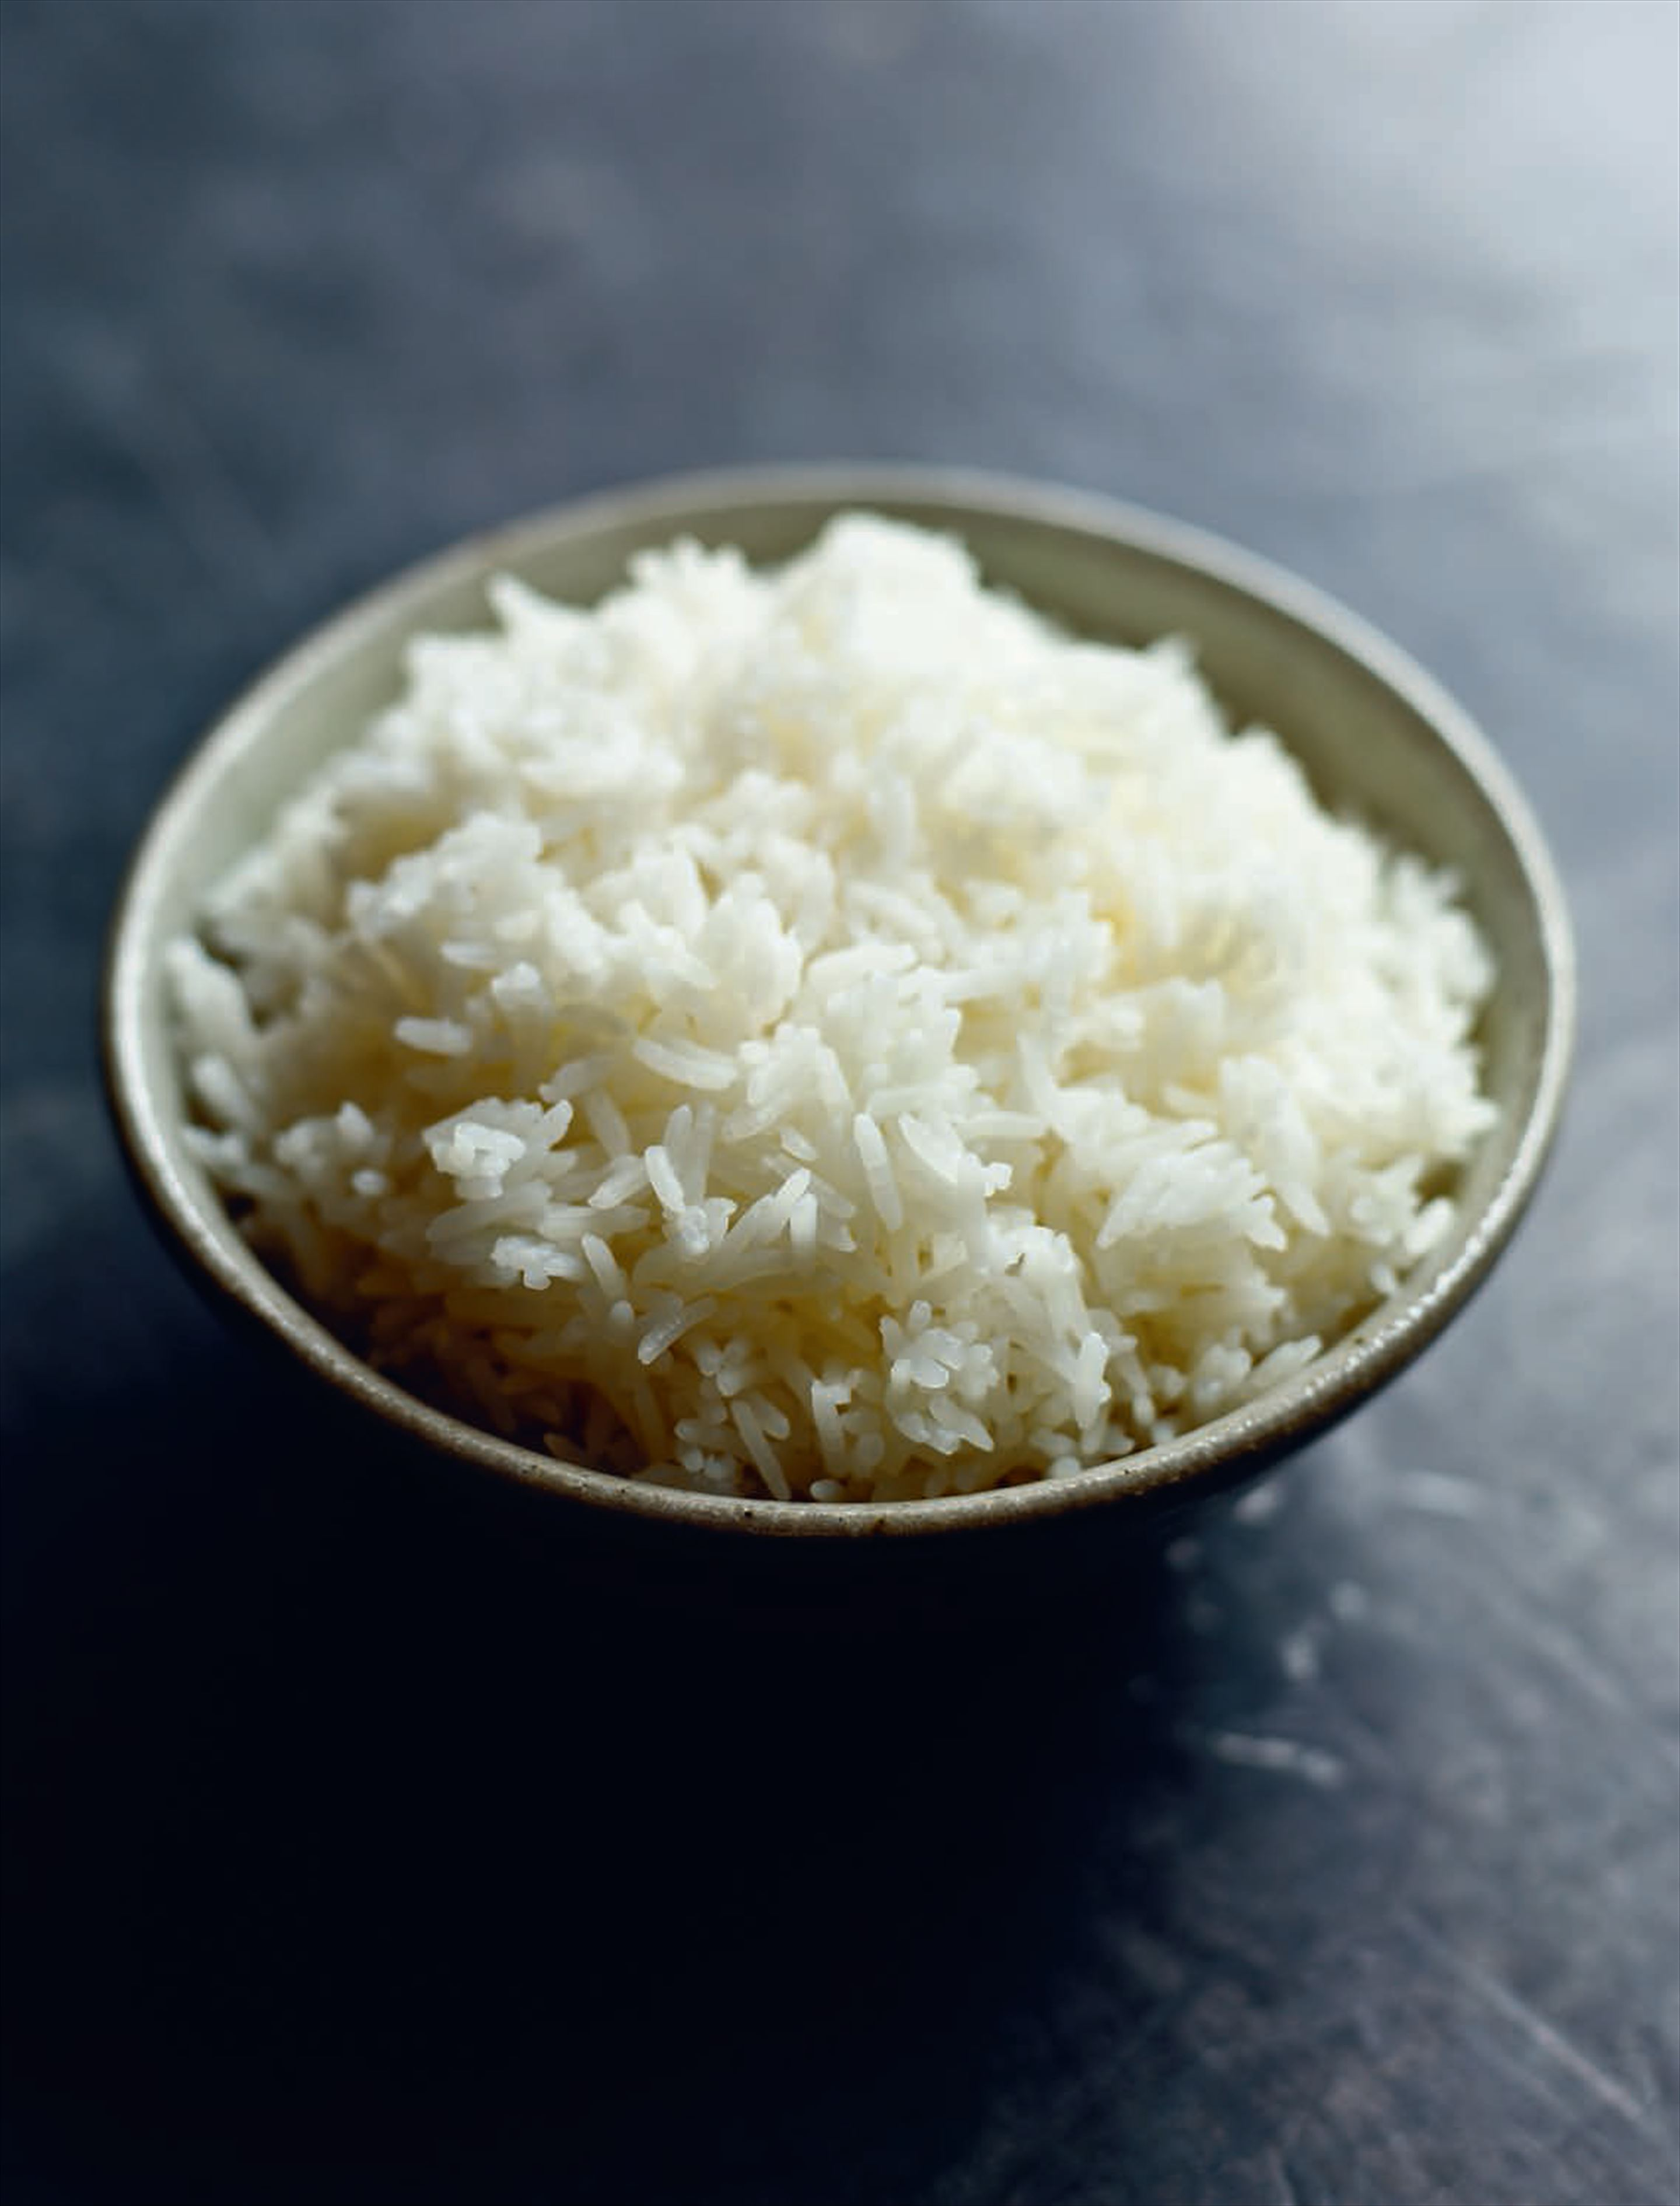 Plain white rice